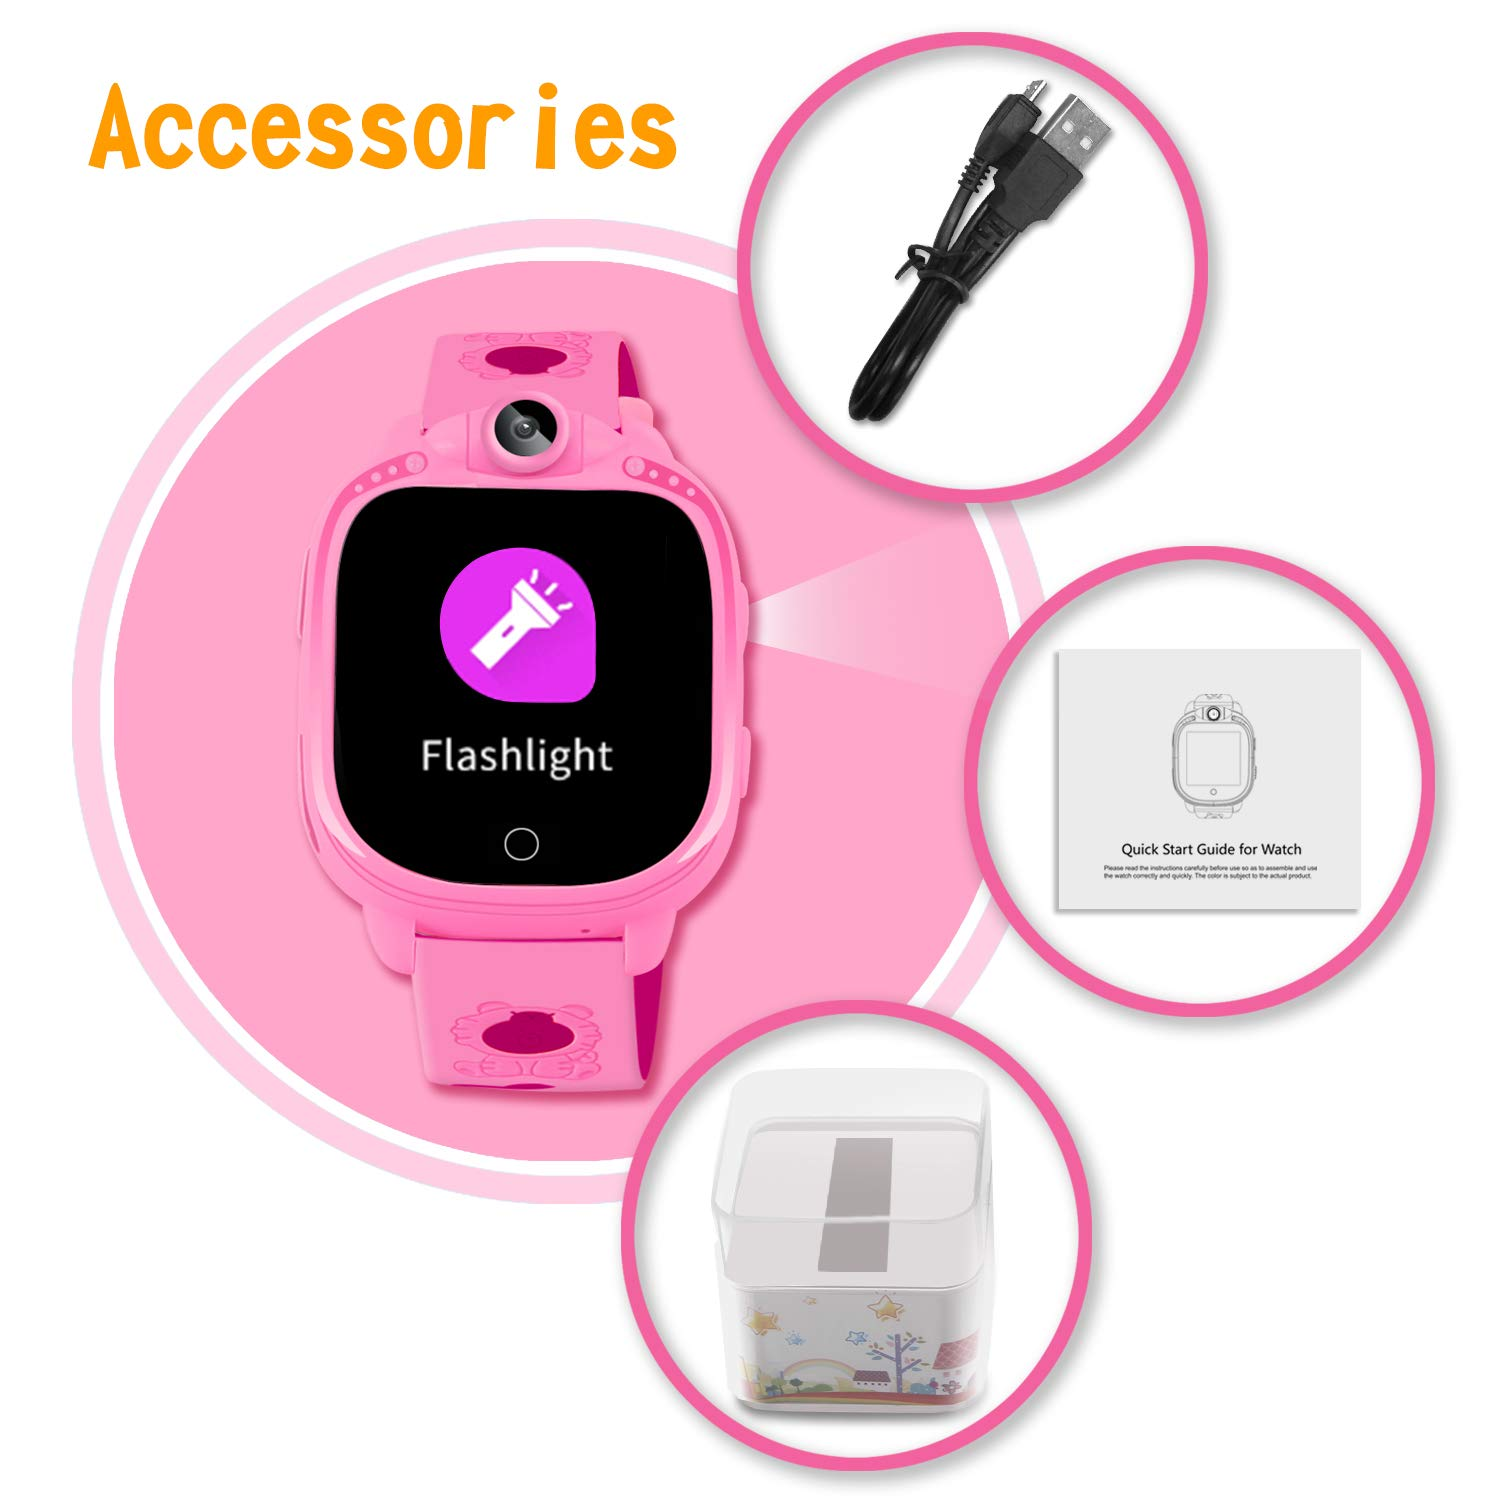 Kids Smart Game Watch with 90°Rotatable Camera Touch Screen Digital Wrist Watch Smartwatch for Girls Kids Electronic Learning Toys(Pink)